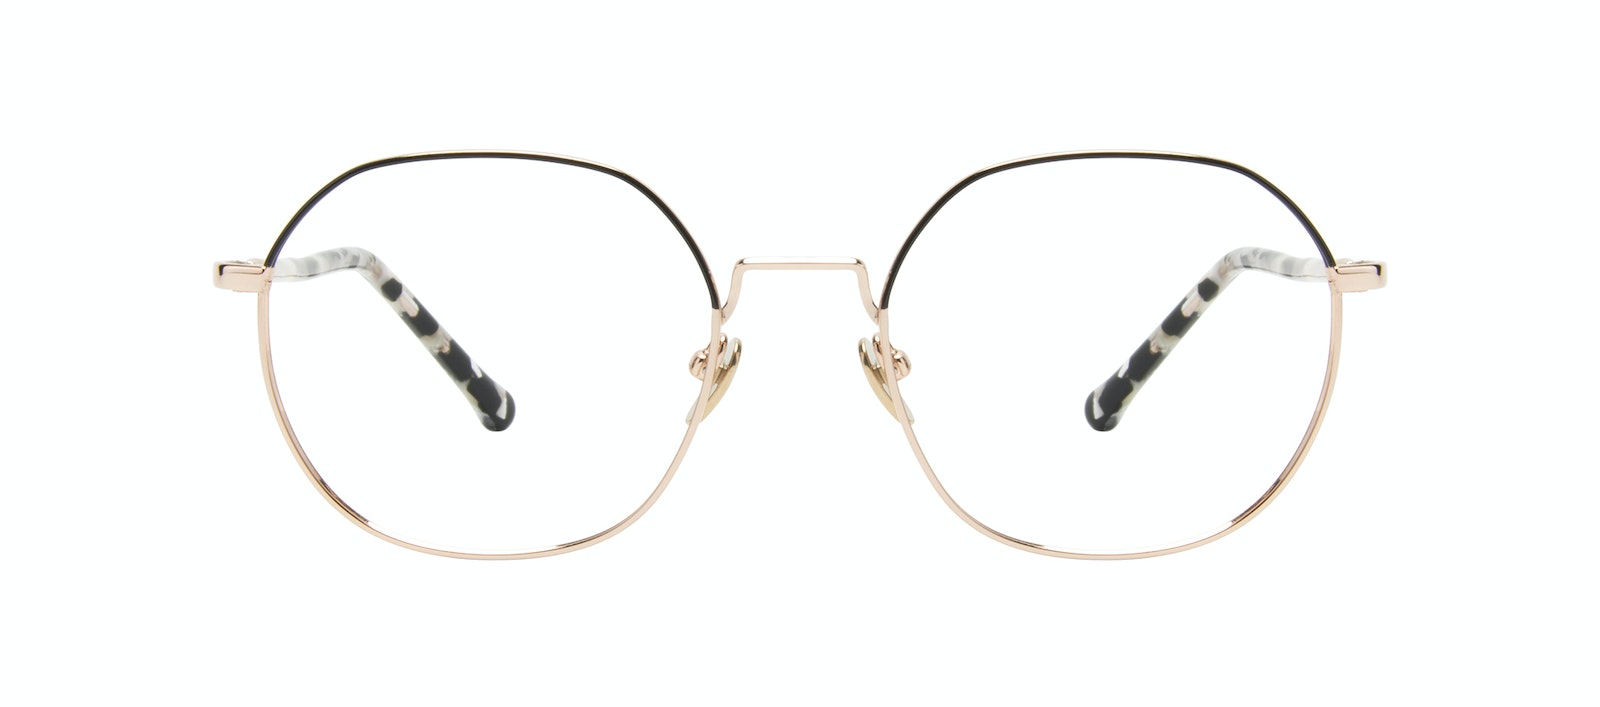 Affordable Fashion Glasses Round Eyeglasses Women Coco Deep Gold Front